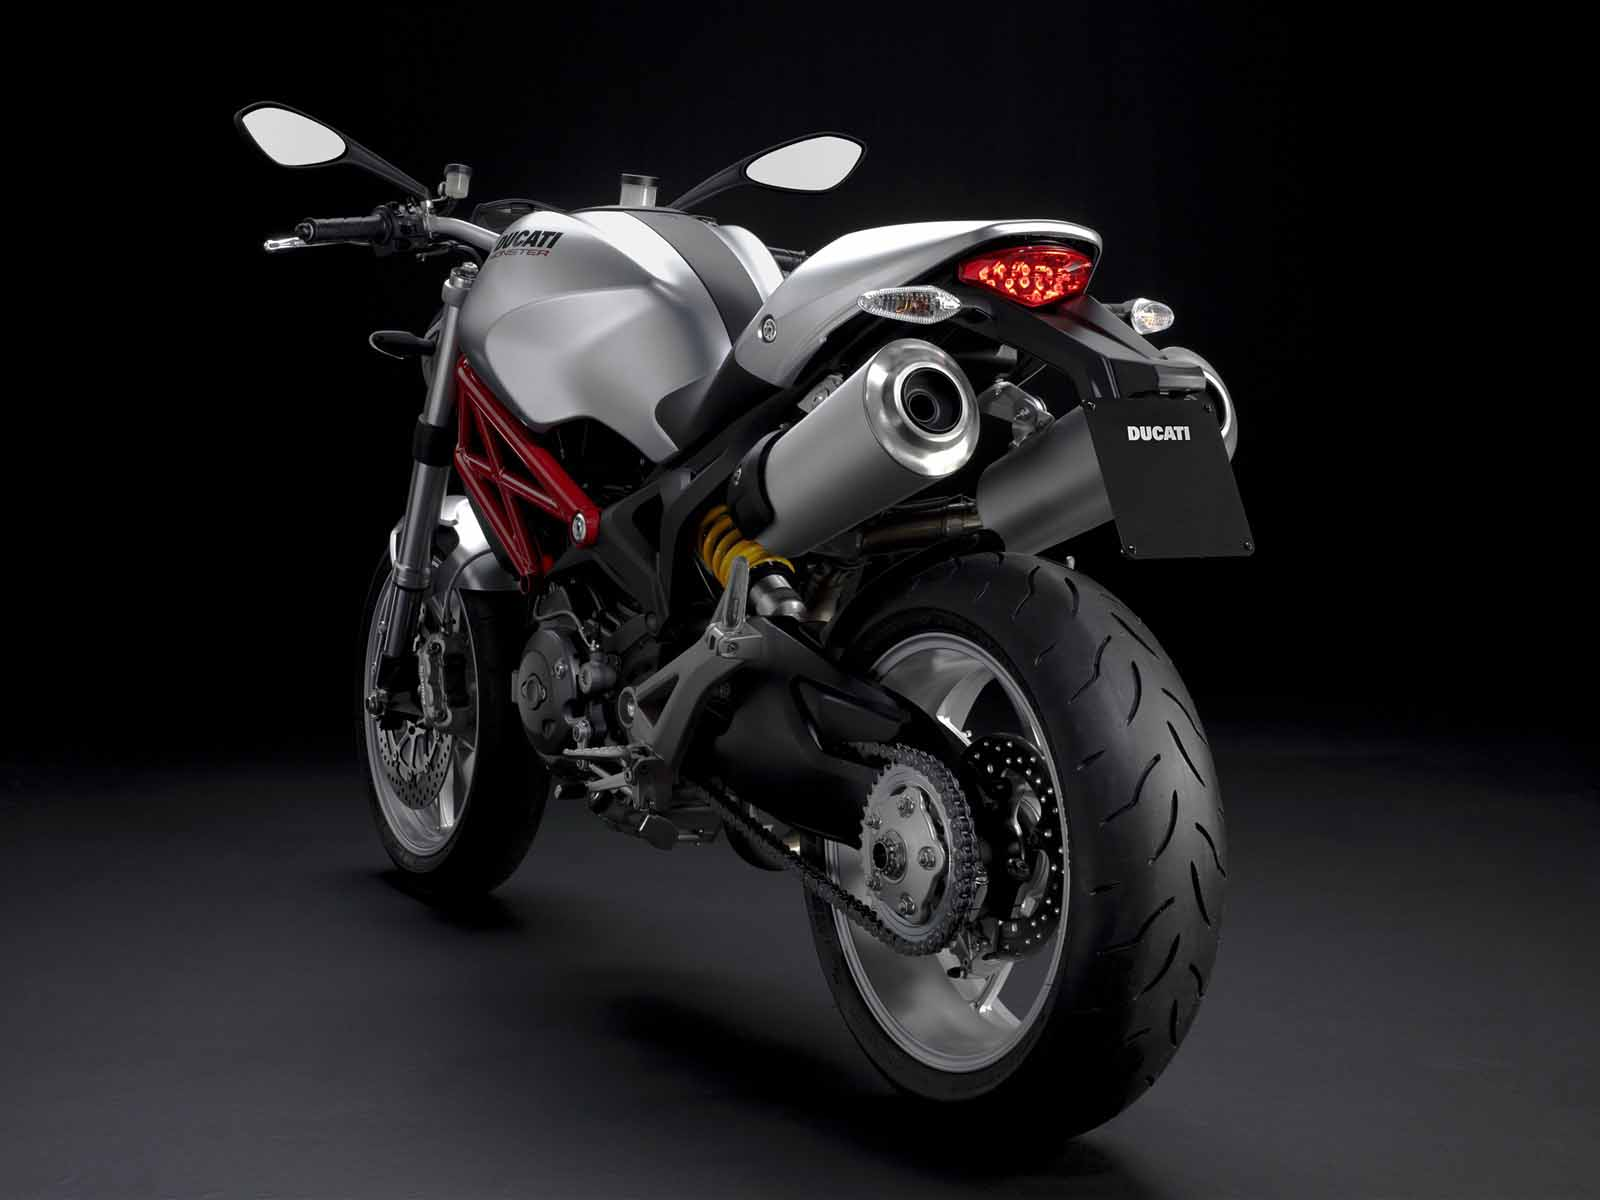 Hq Wallpapers Ducati Monster Wallpapers